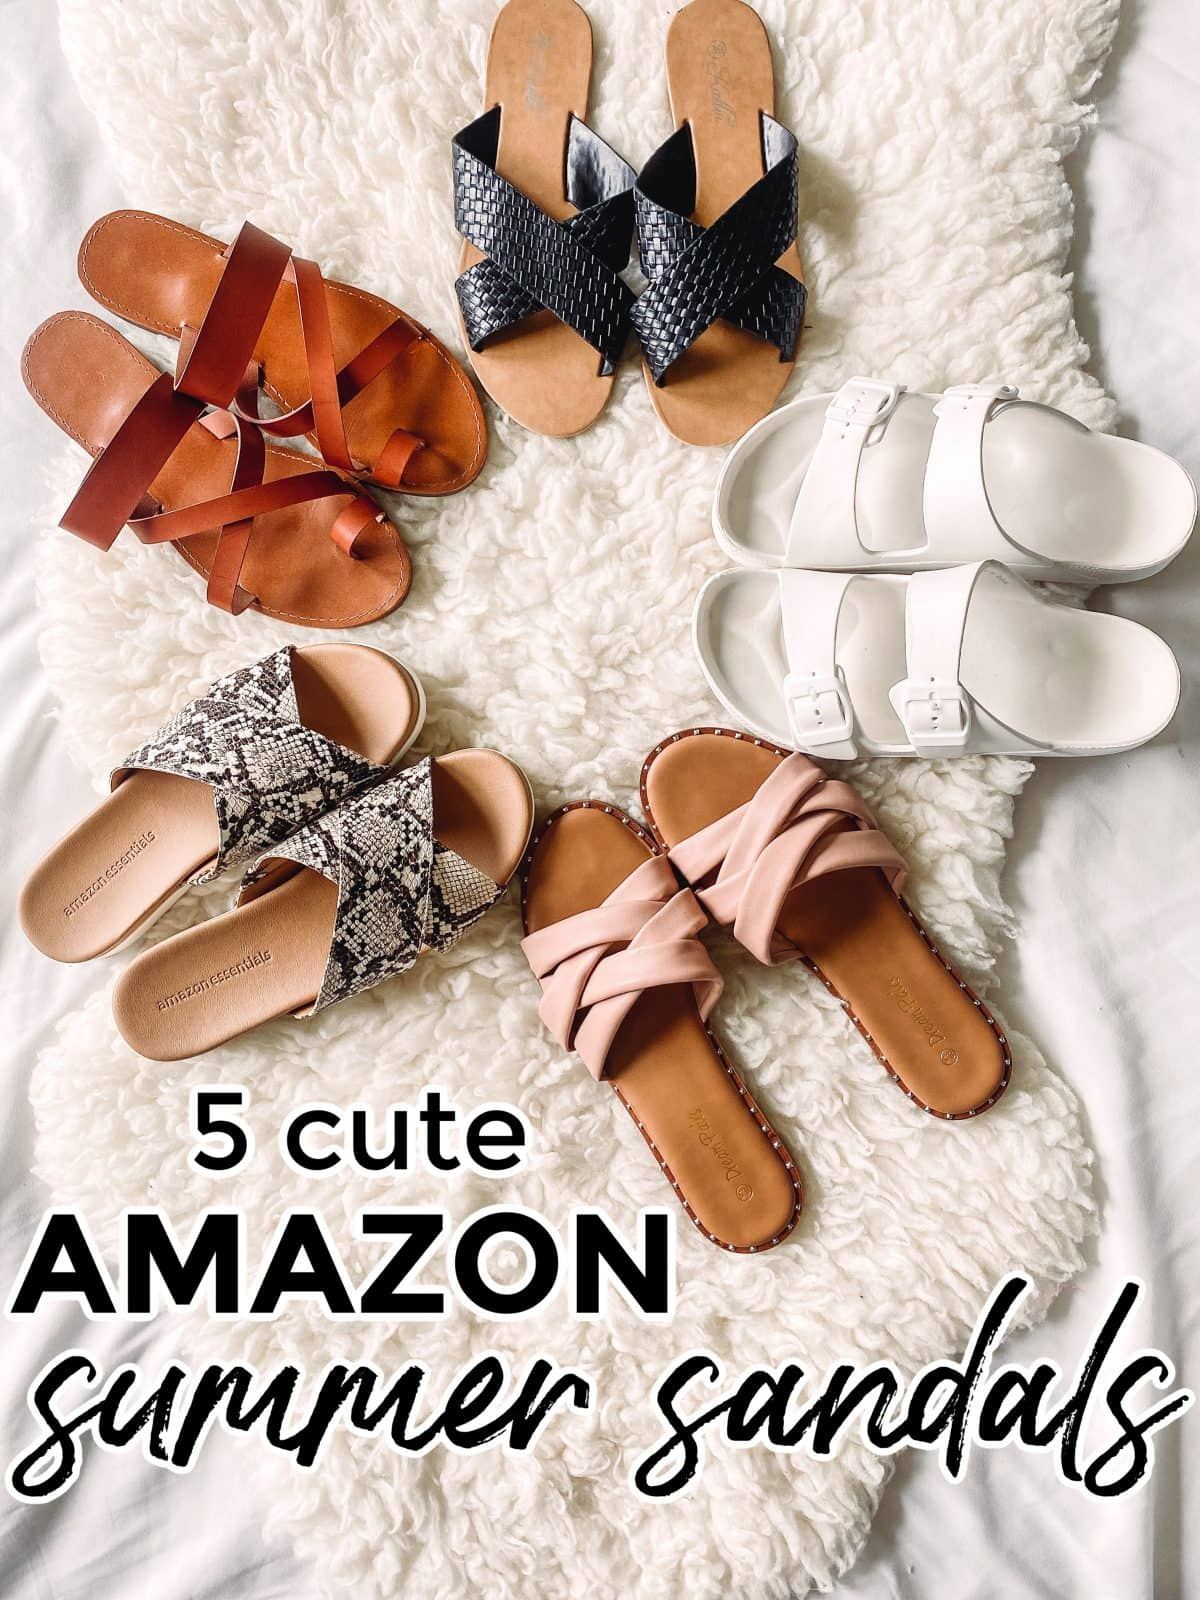 Houston lifestyle influencer Meg O. shares cute Amazon sandals for summer 2021. Which one is your favorite?